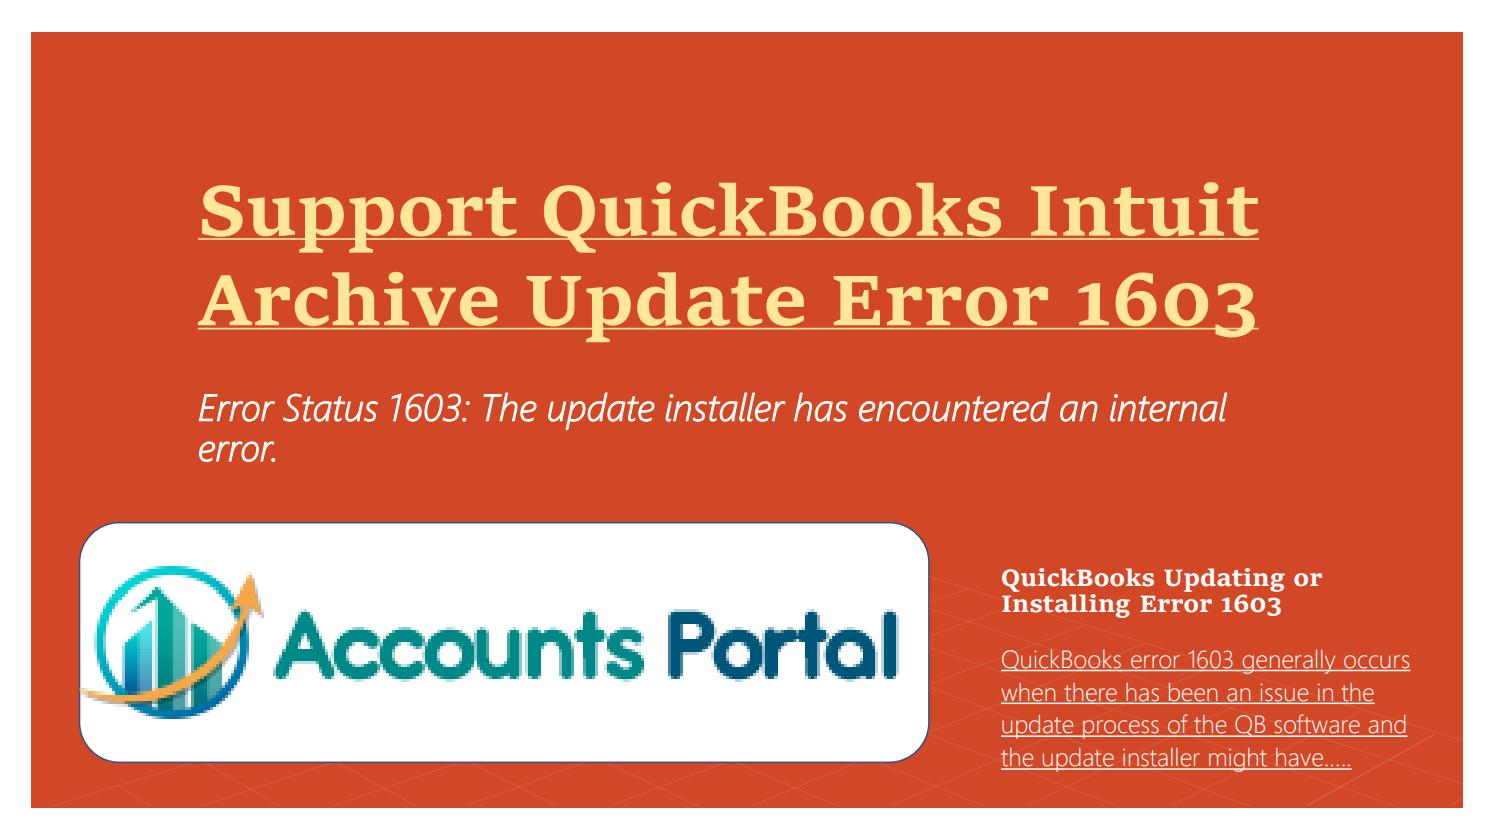 Support QuickBooks Intuit Archive Update Error 1603 by